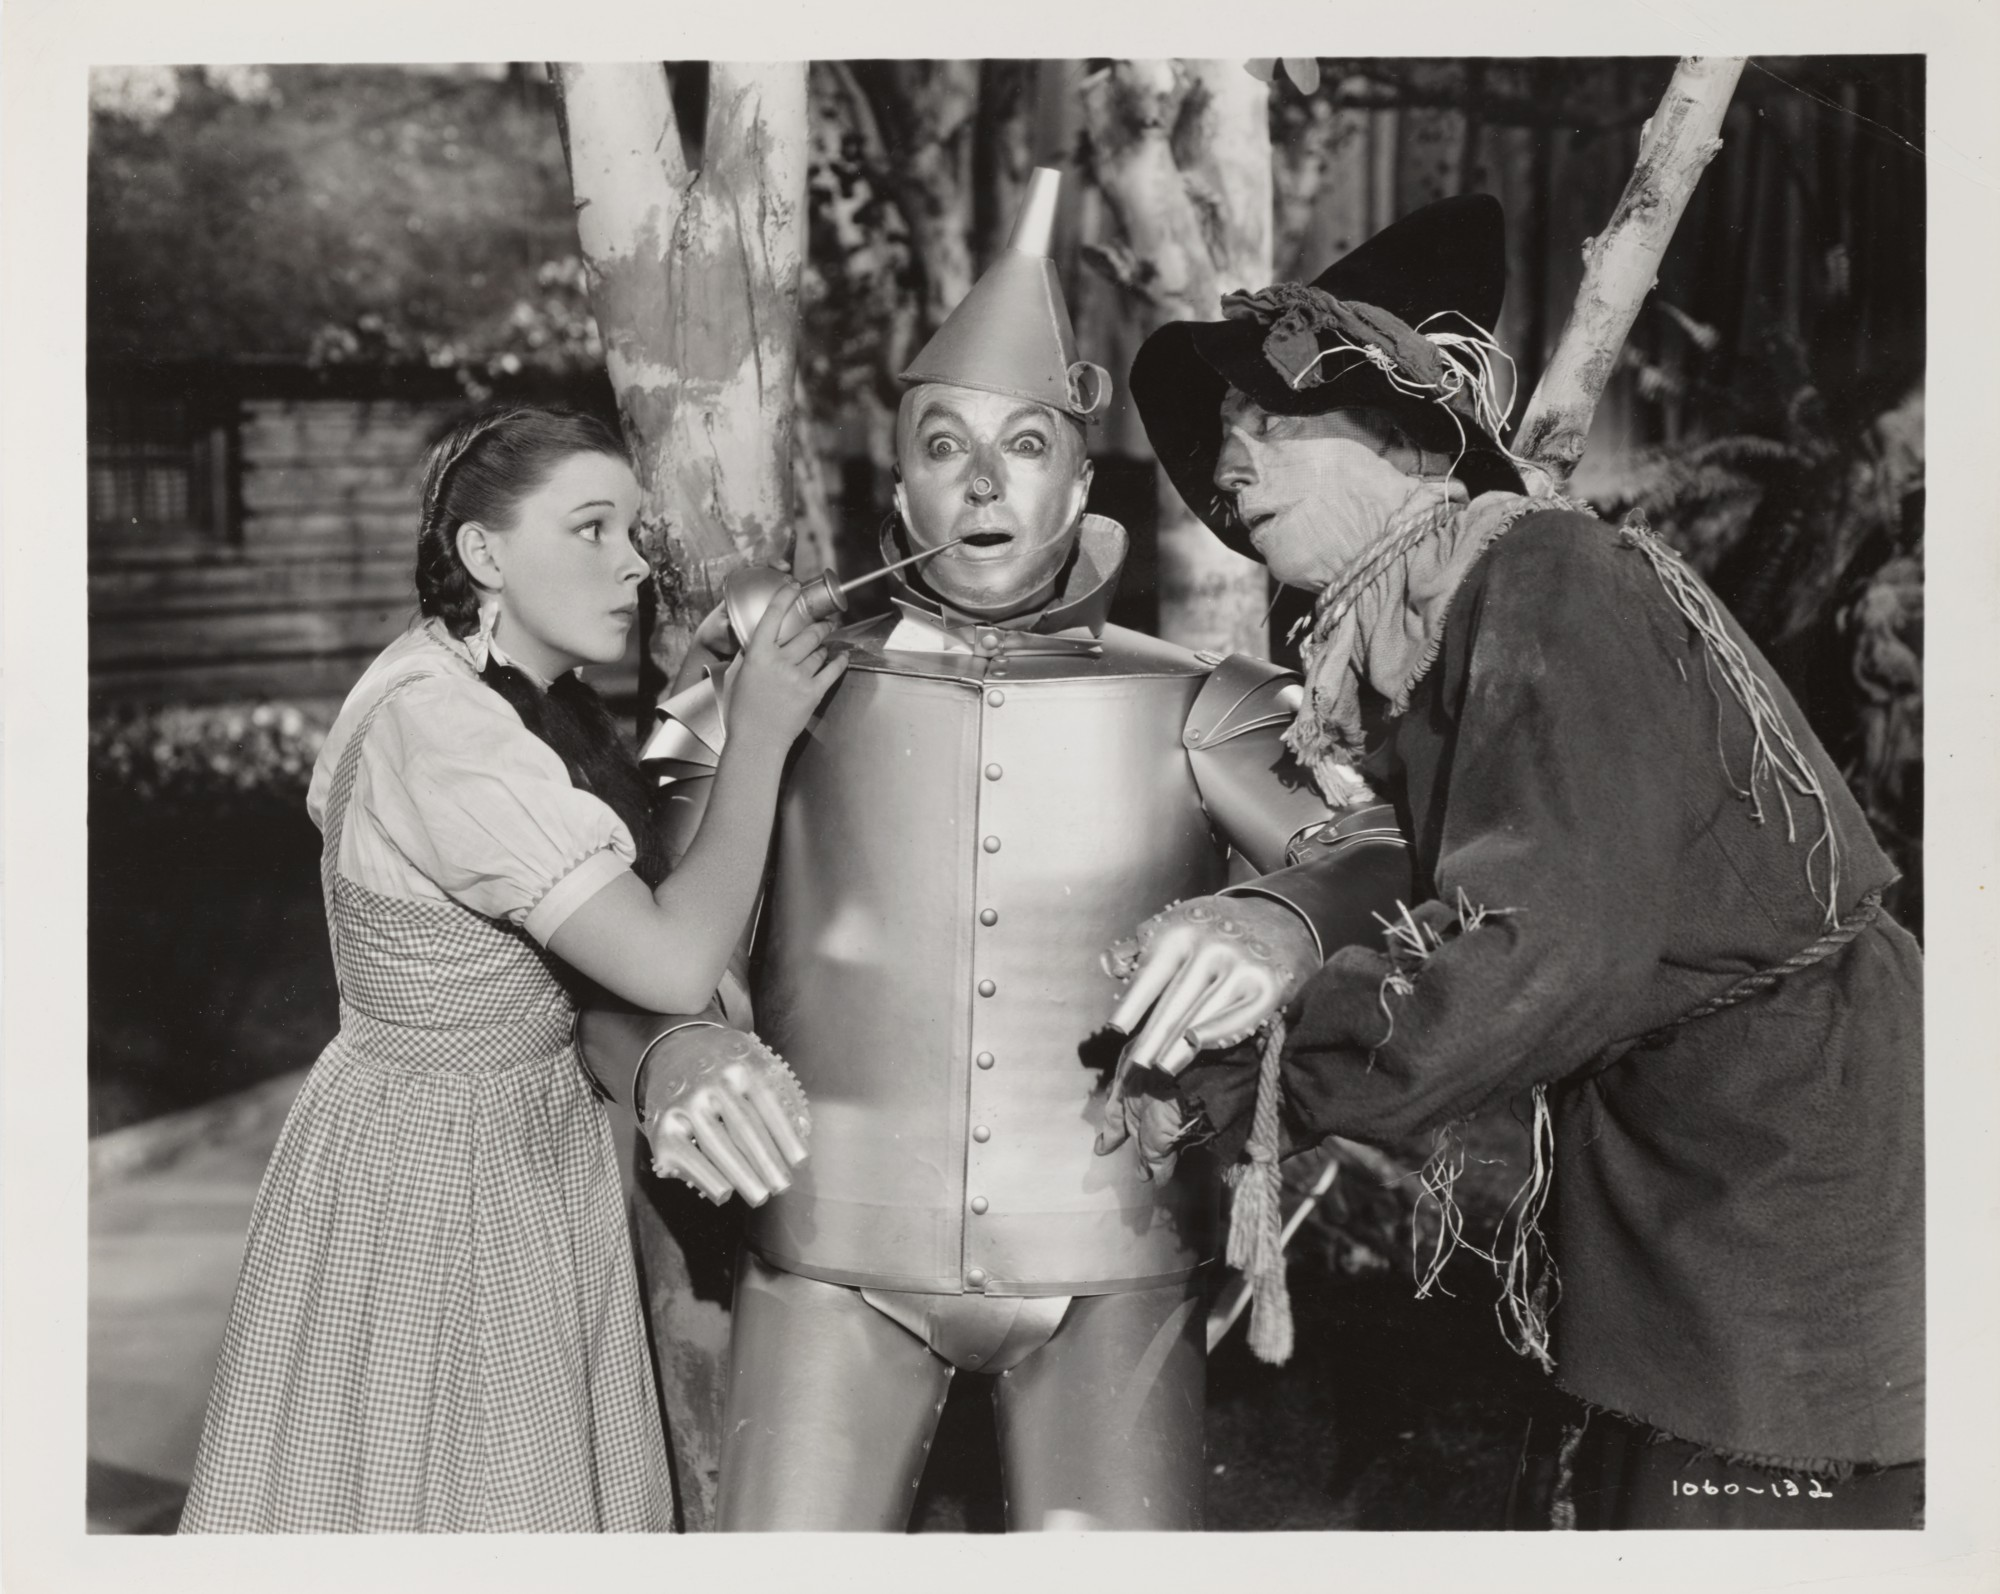 THE WIZARD OF OZ (1939) ORIGINAL PRODUCTION STILL, US